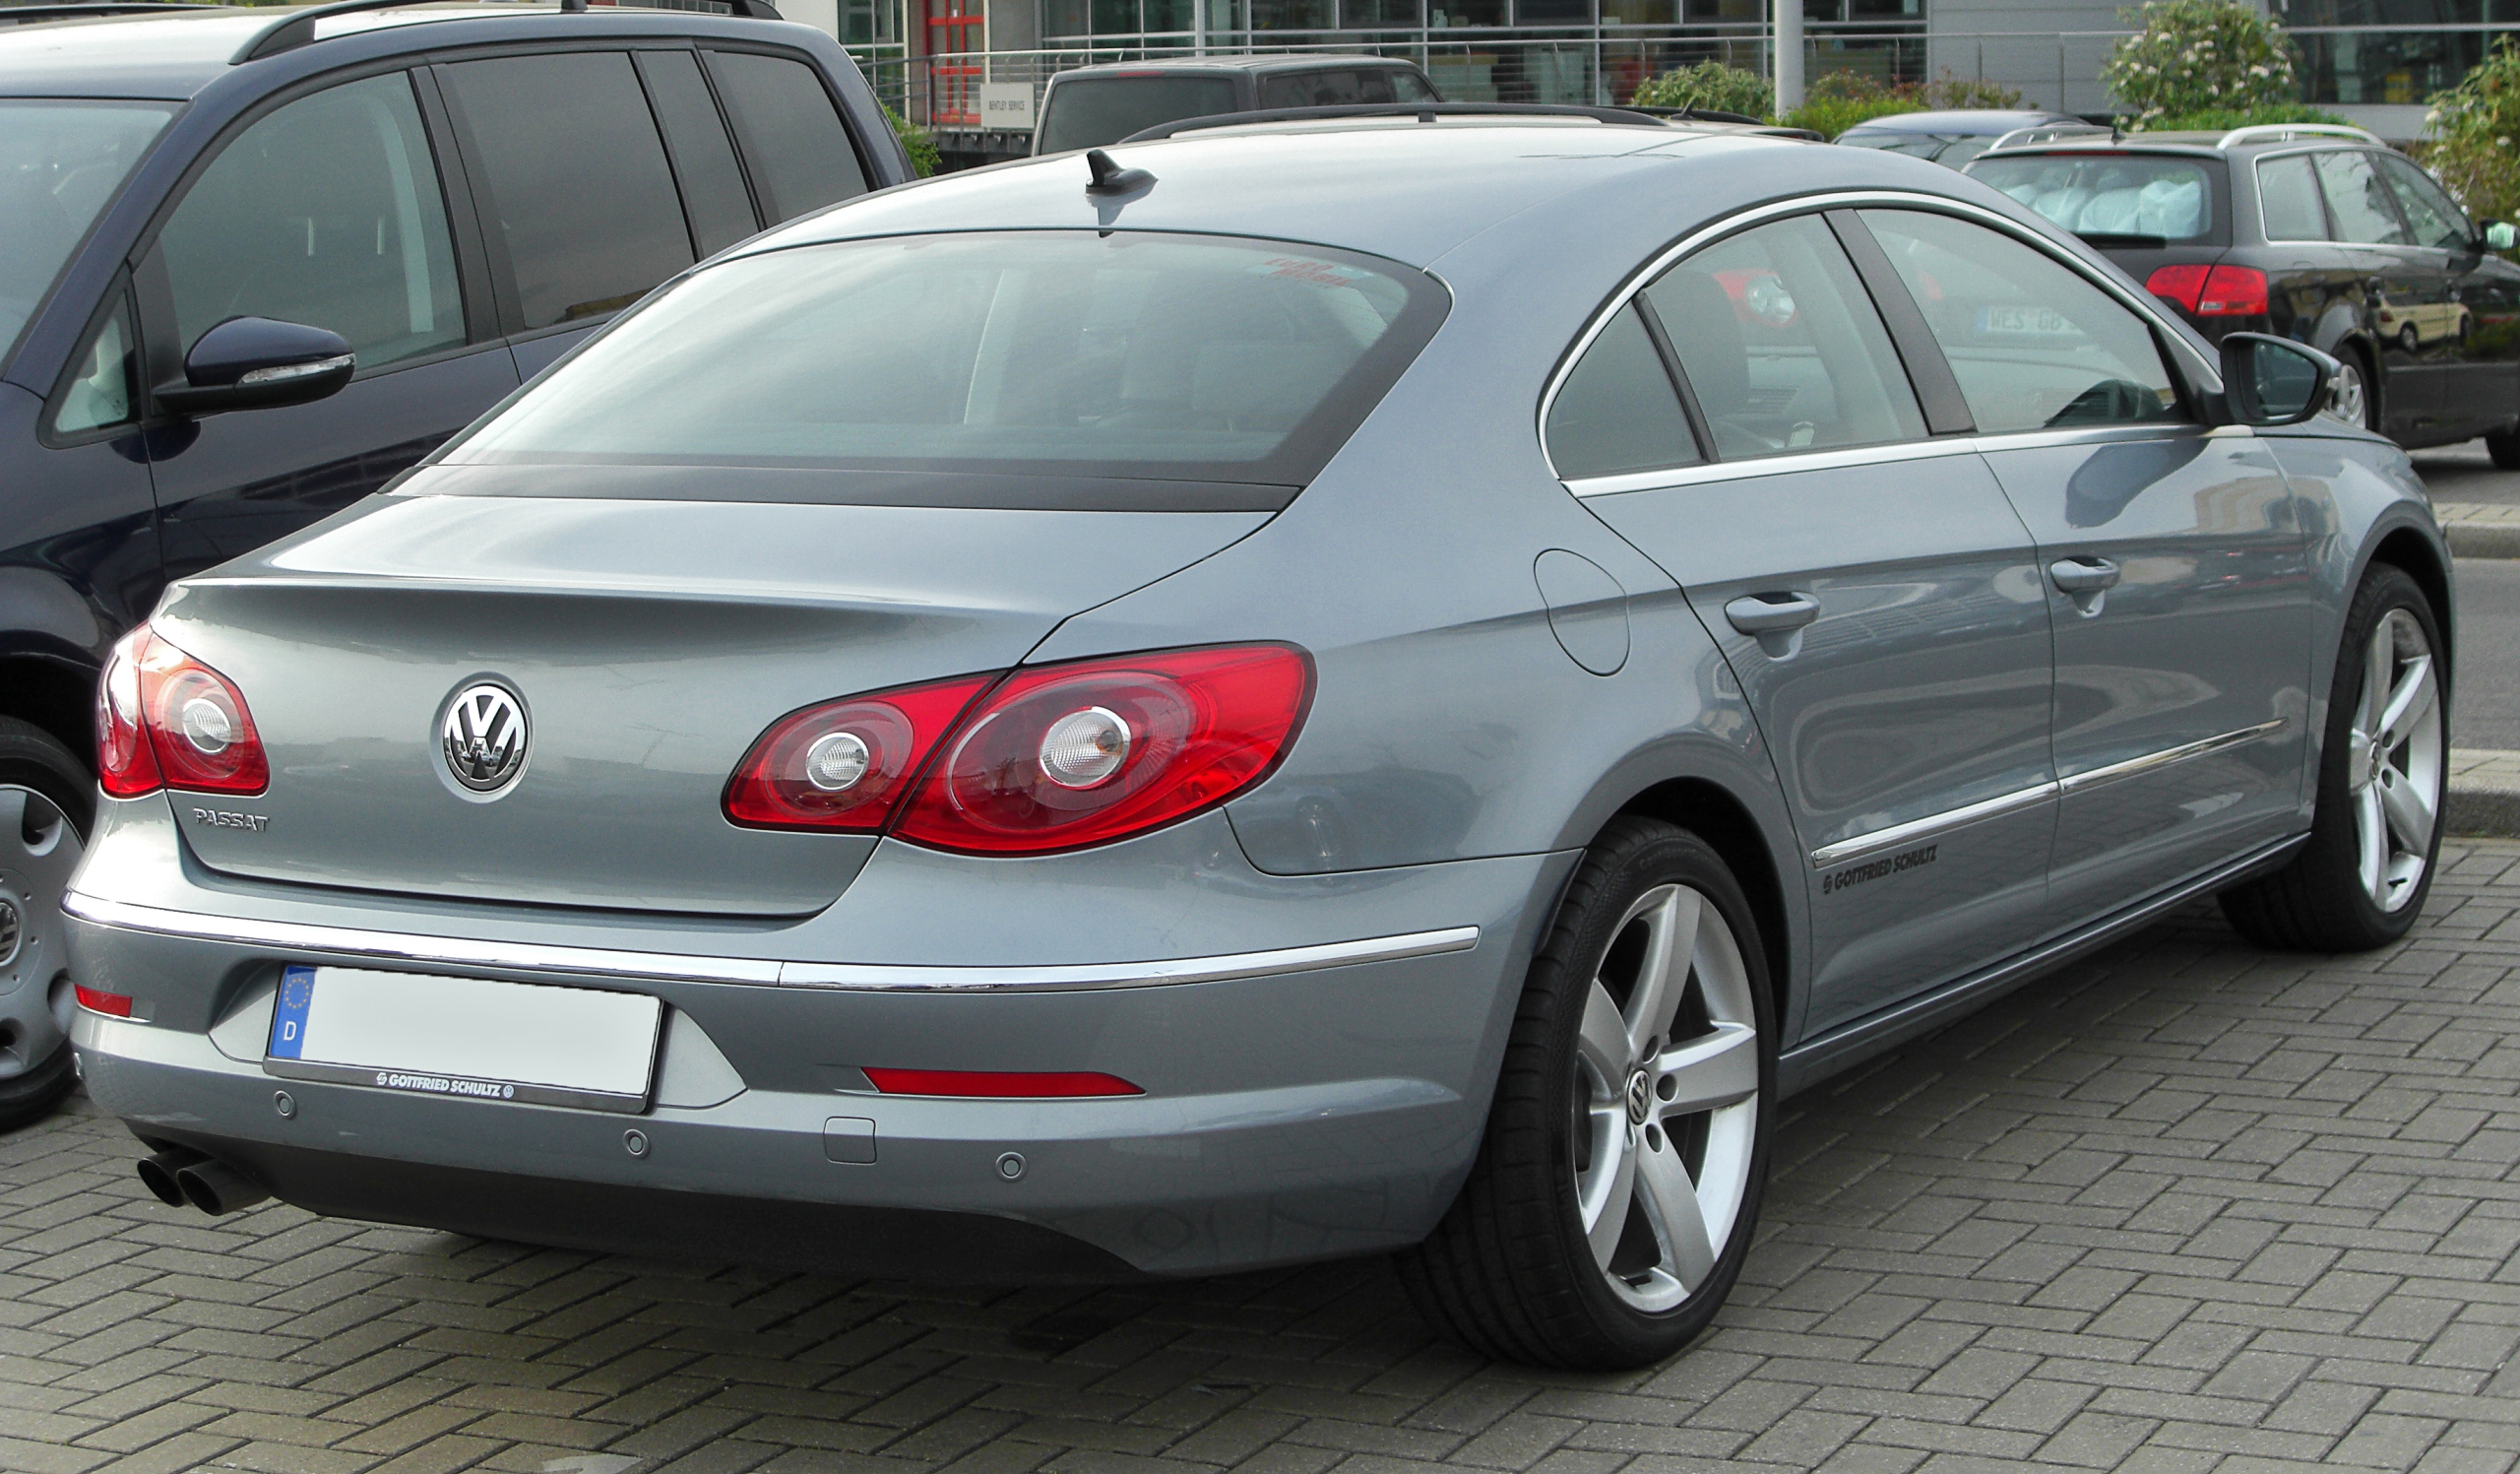 File:VW Passat CC rear 20100425.jpg - Wikimedia Commons